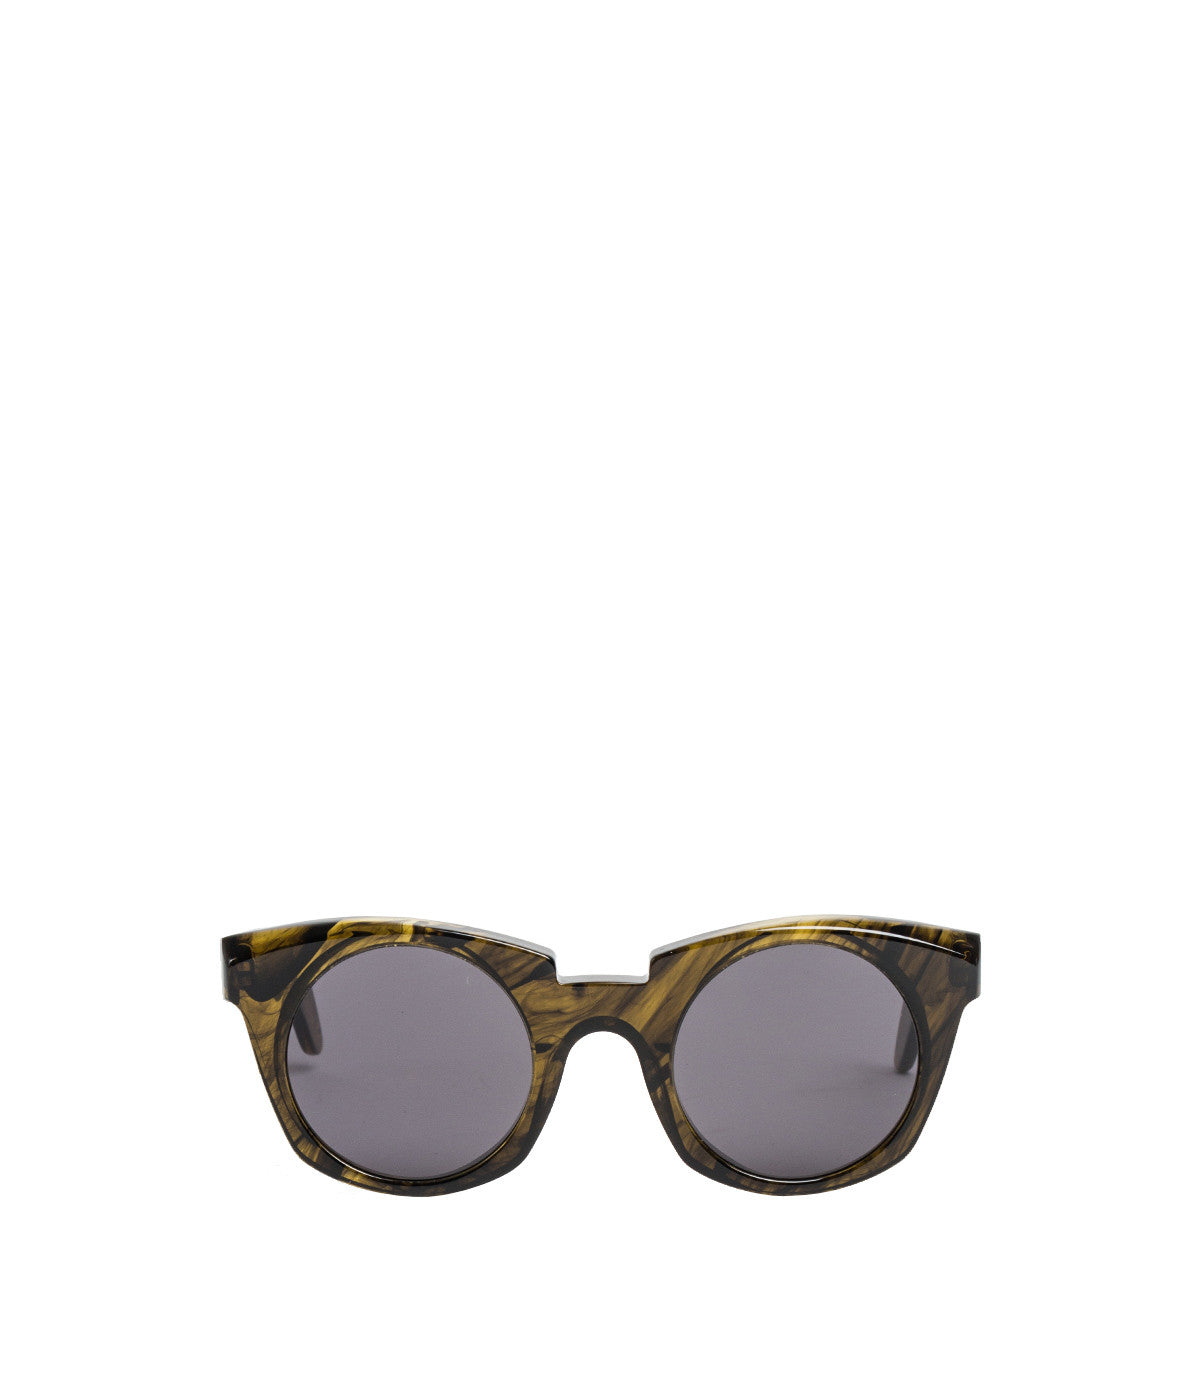 U6 MGS Military Green Sunglasses